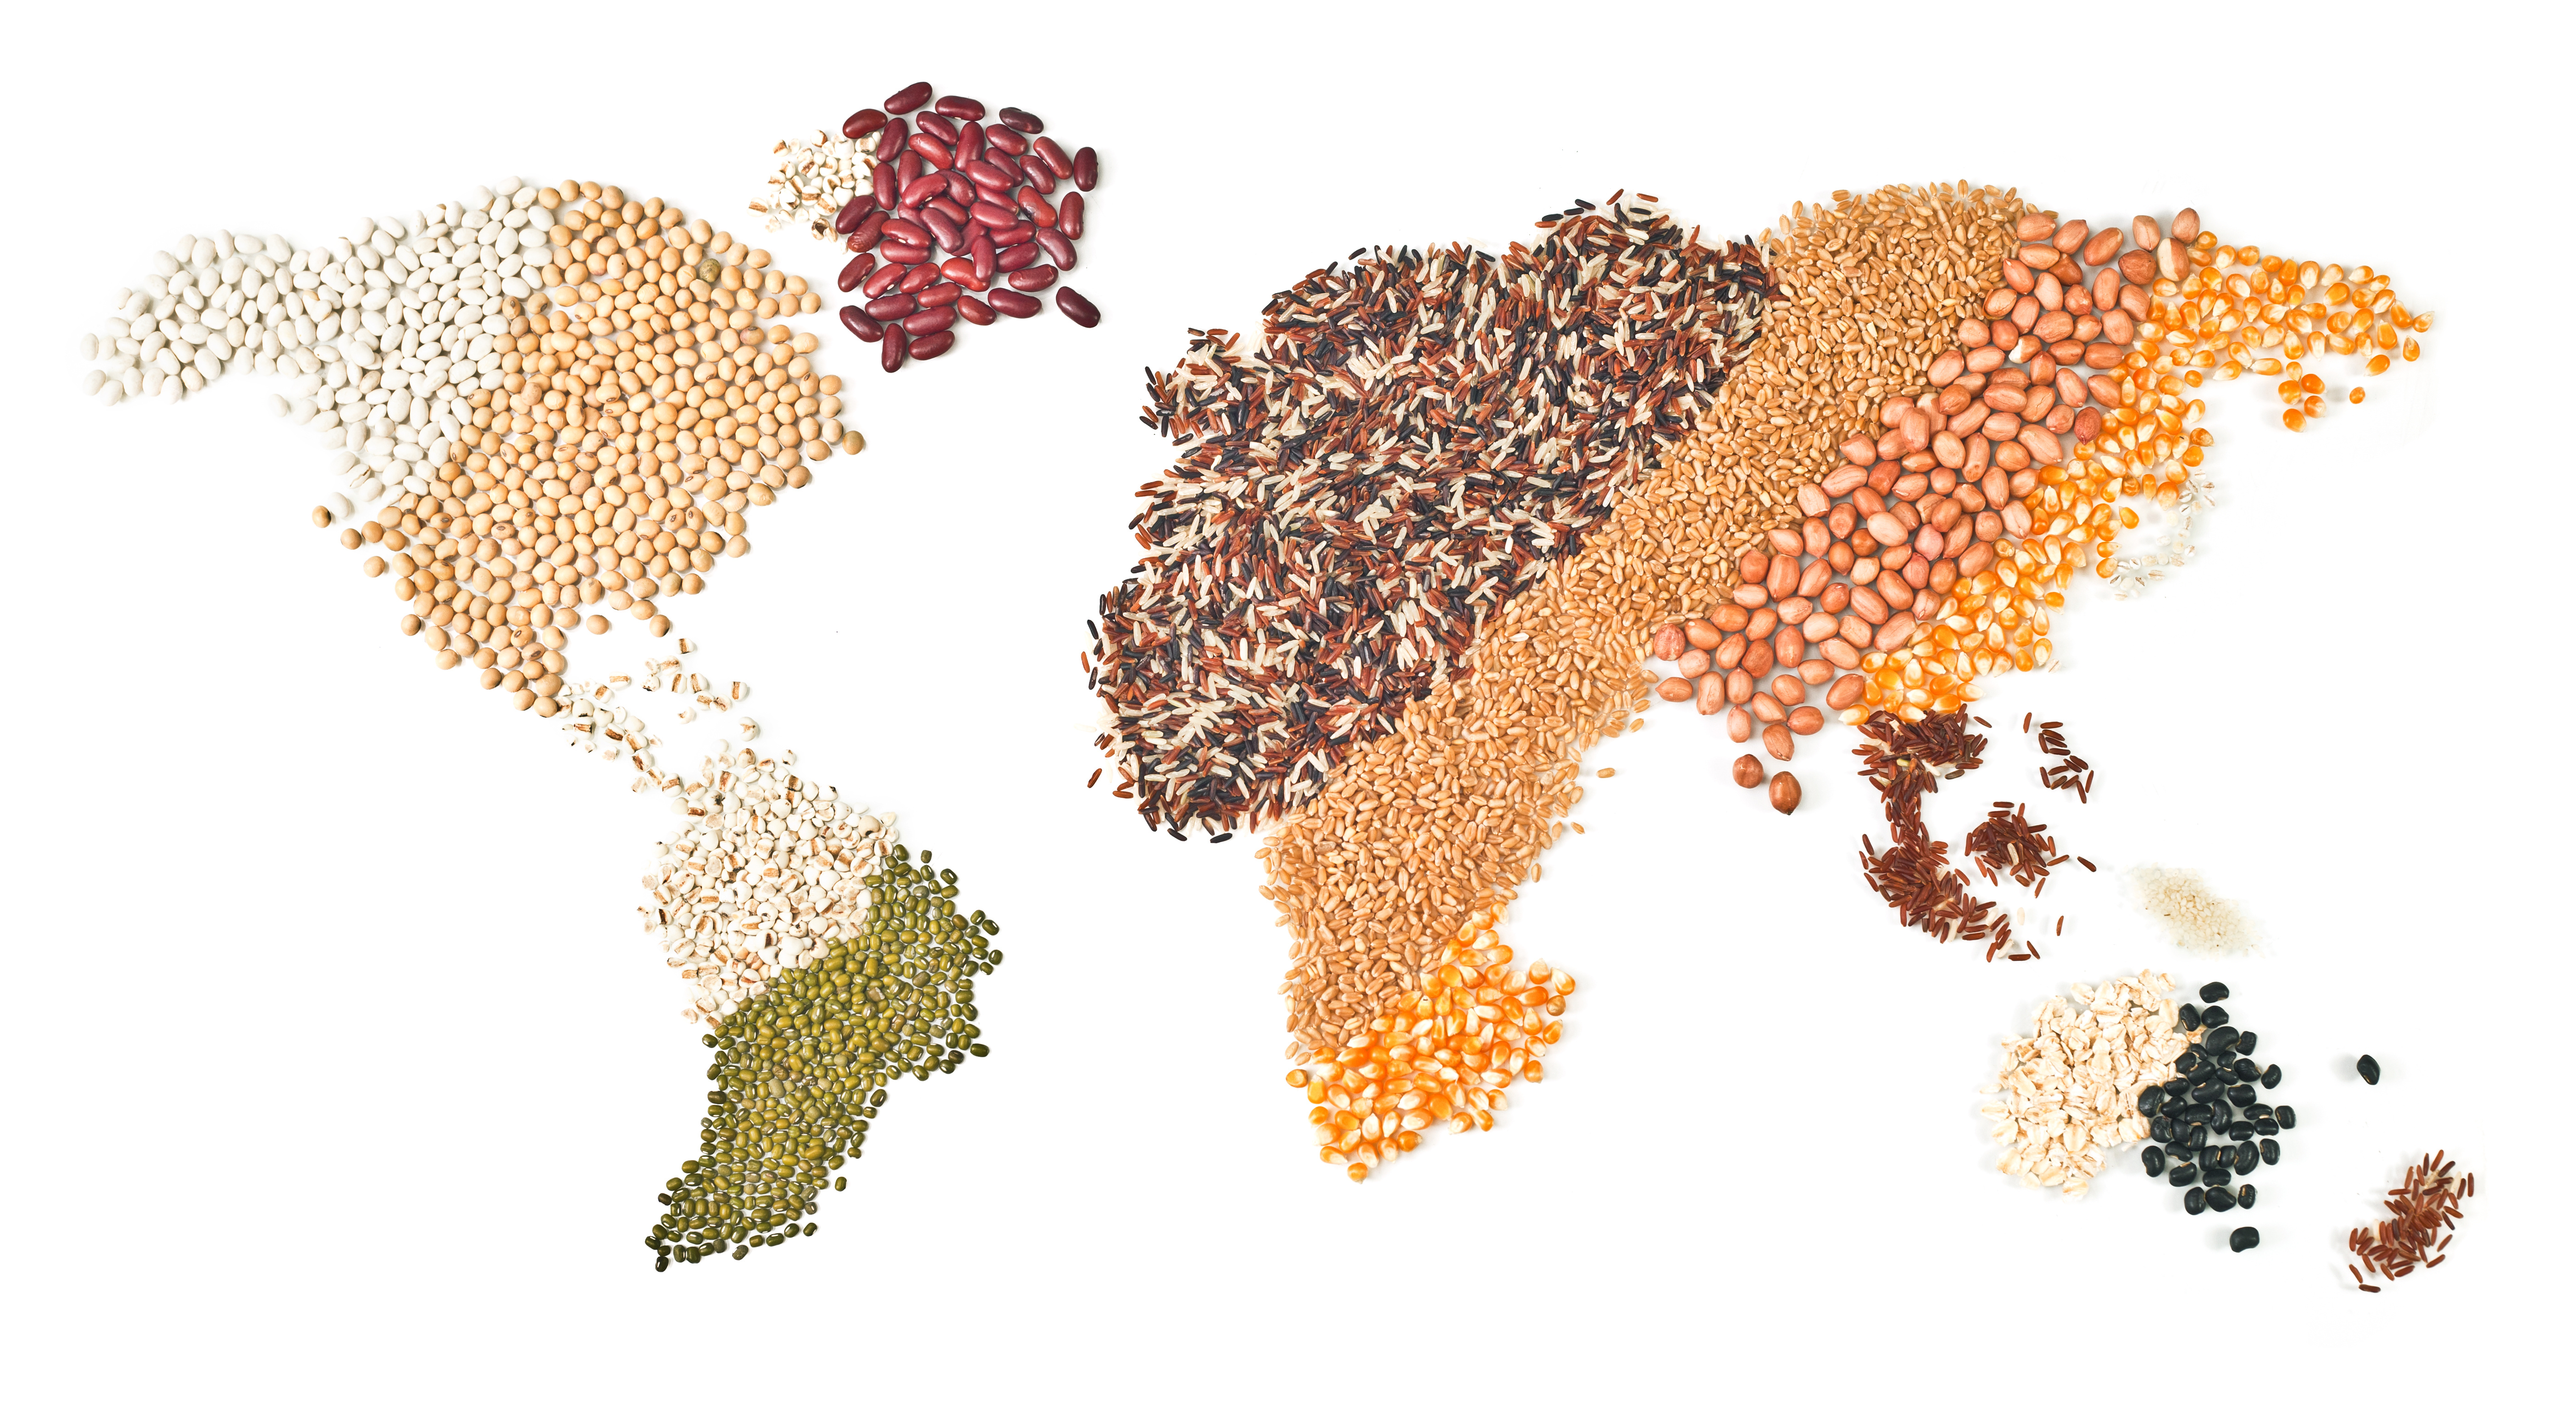 International Grains Council, grains, rice and oilseed on international map